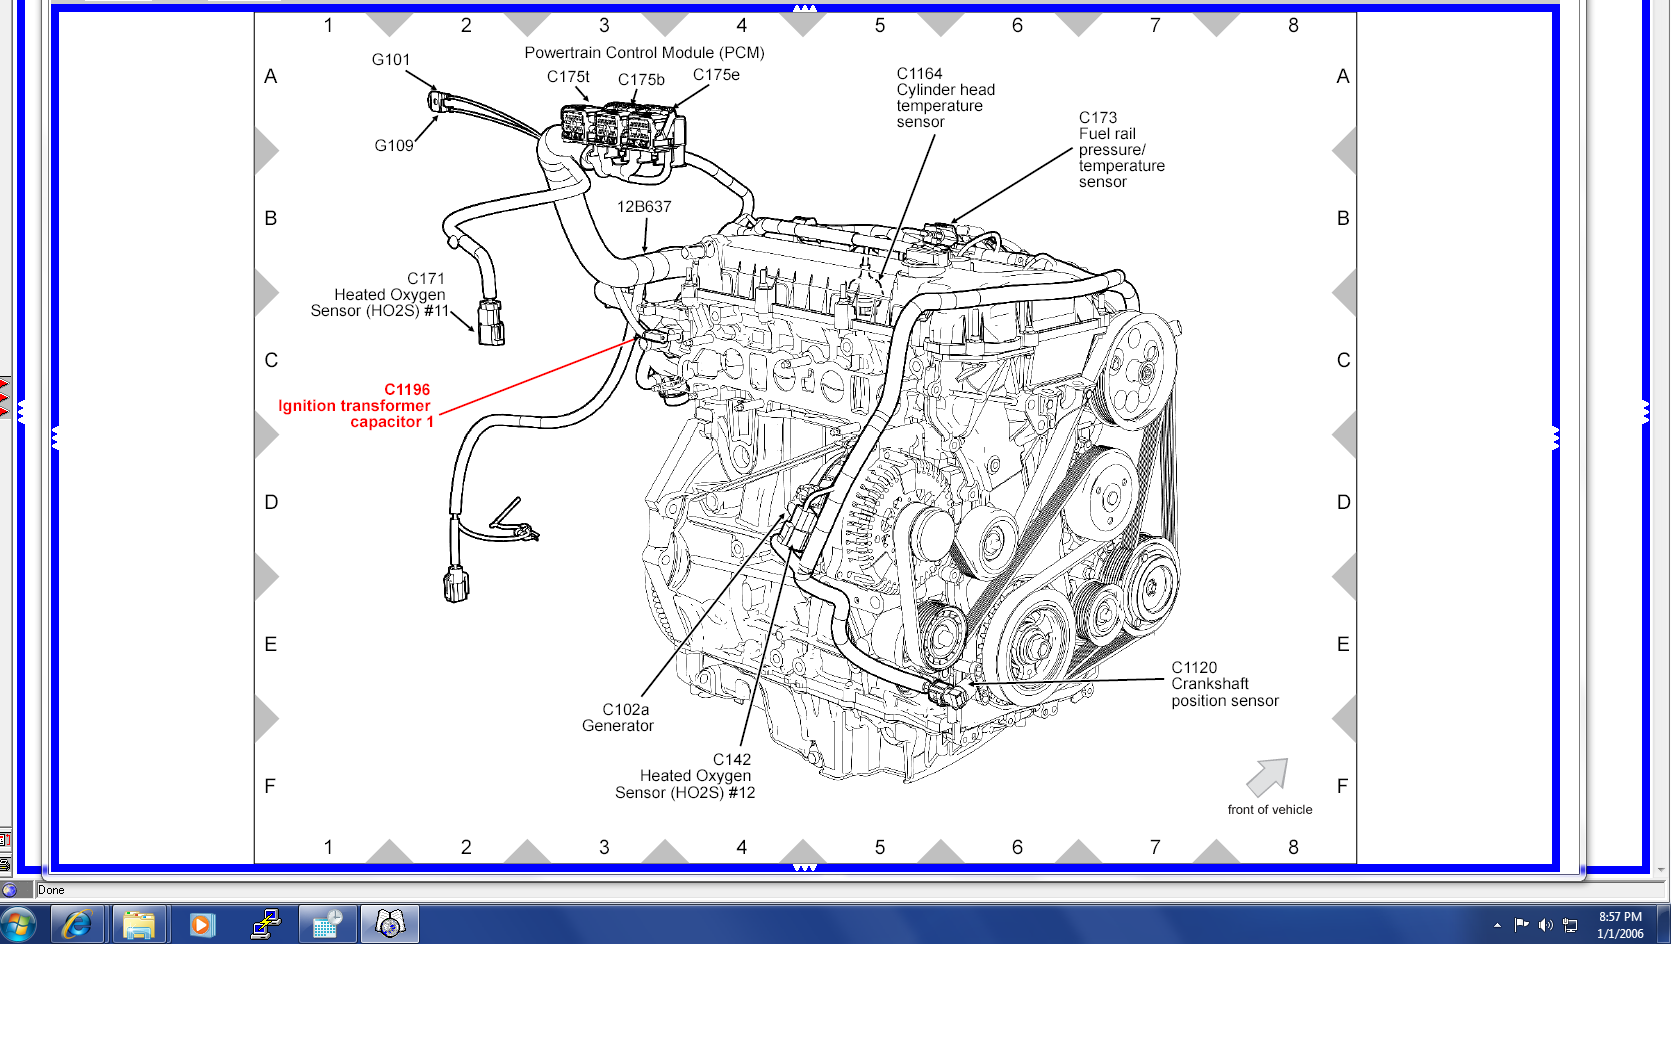 2002 Ford Escape 3 0 Engine Diagram Not Lossing Wiring Crank Position Sensor Jeep 4 0l 2007 Edge 2012 Mustang 05 V6 1996